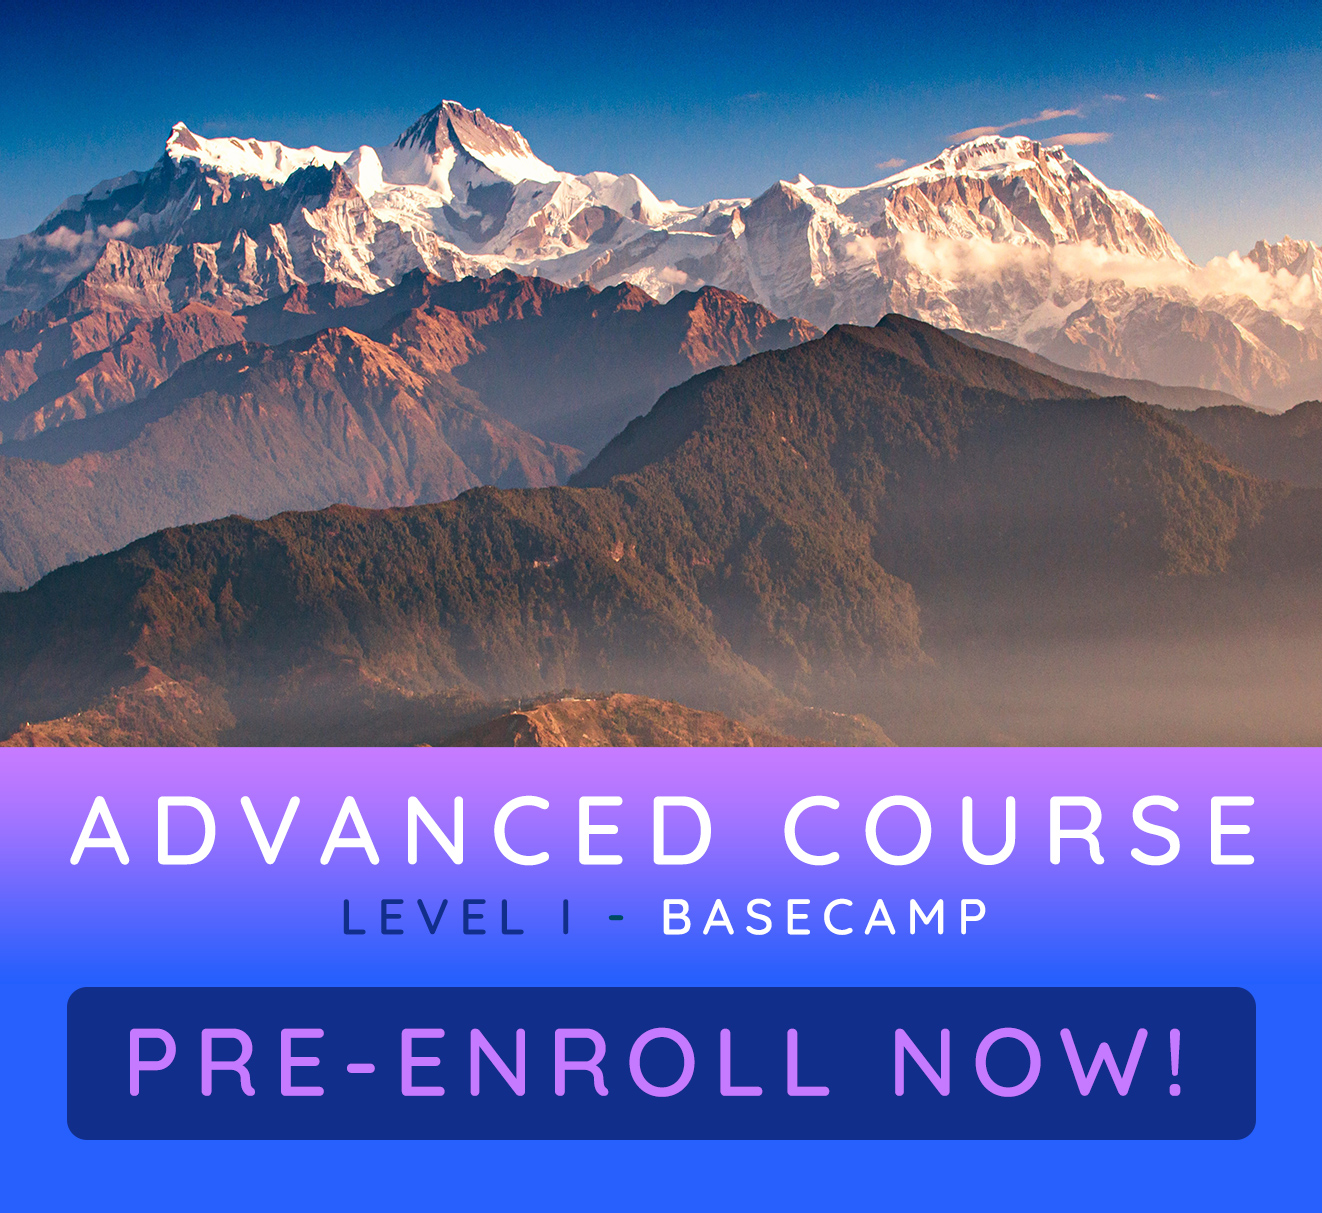 Advanced Course Level I - Basecamp